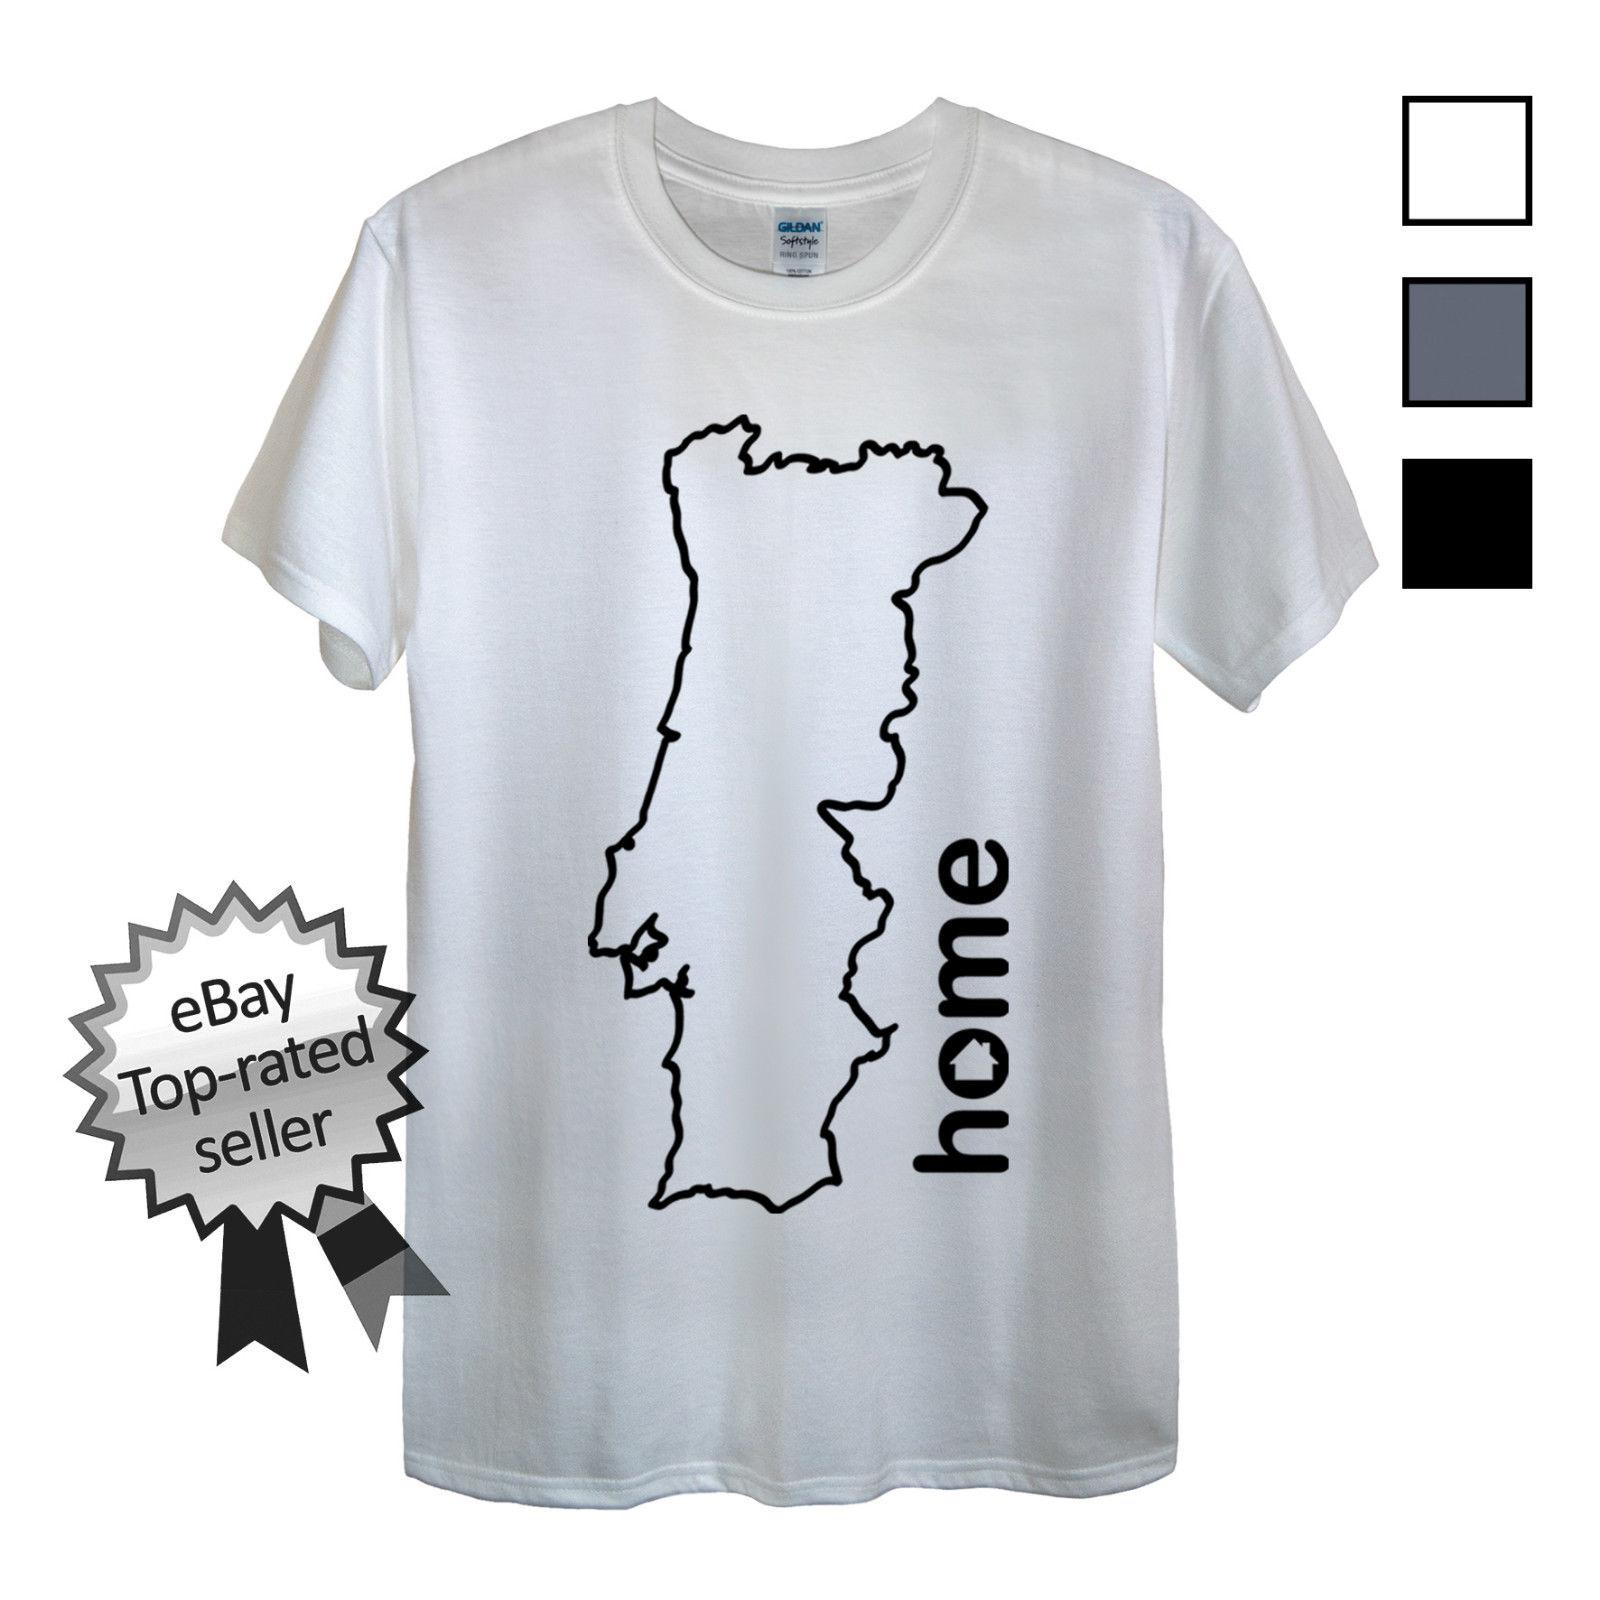 606cda3a PORTUGAL HOME T-Shirt FIND YOUR OWN Country Men OR Women's Portuguese Flag  shirtFunny free shipping Unisex Casual